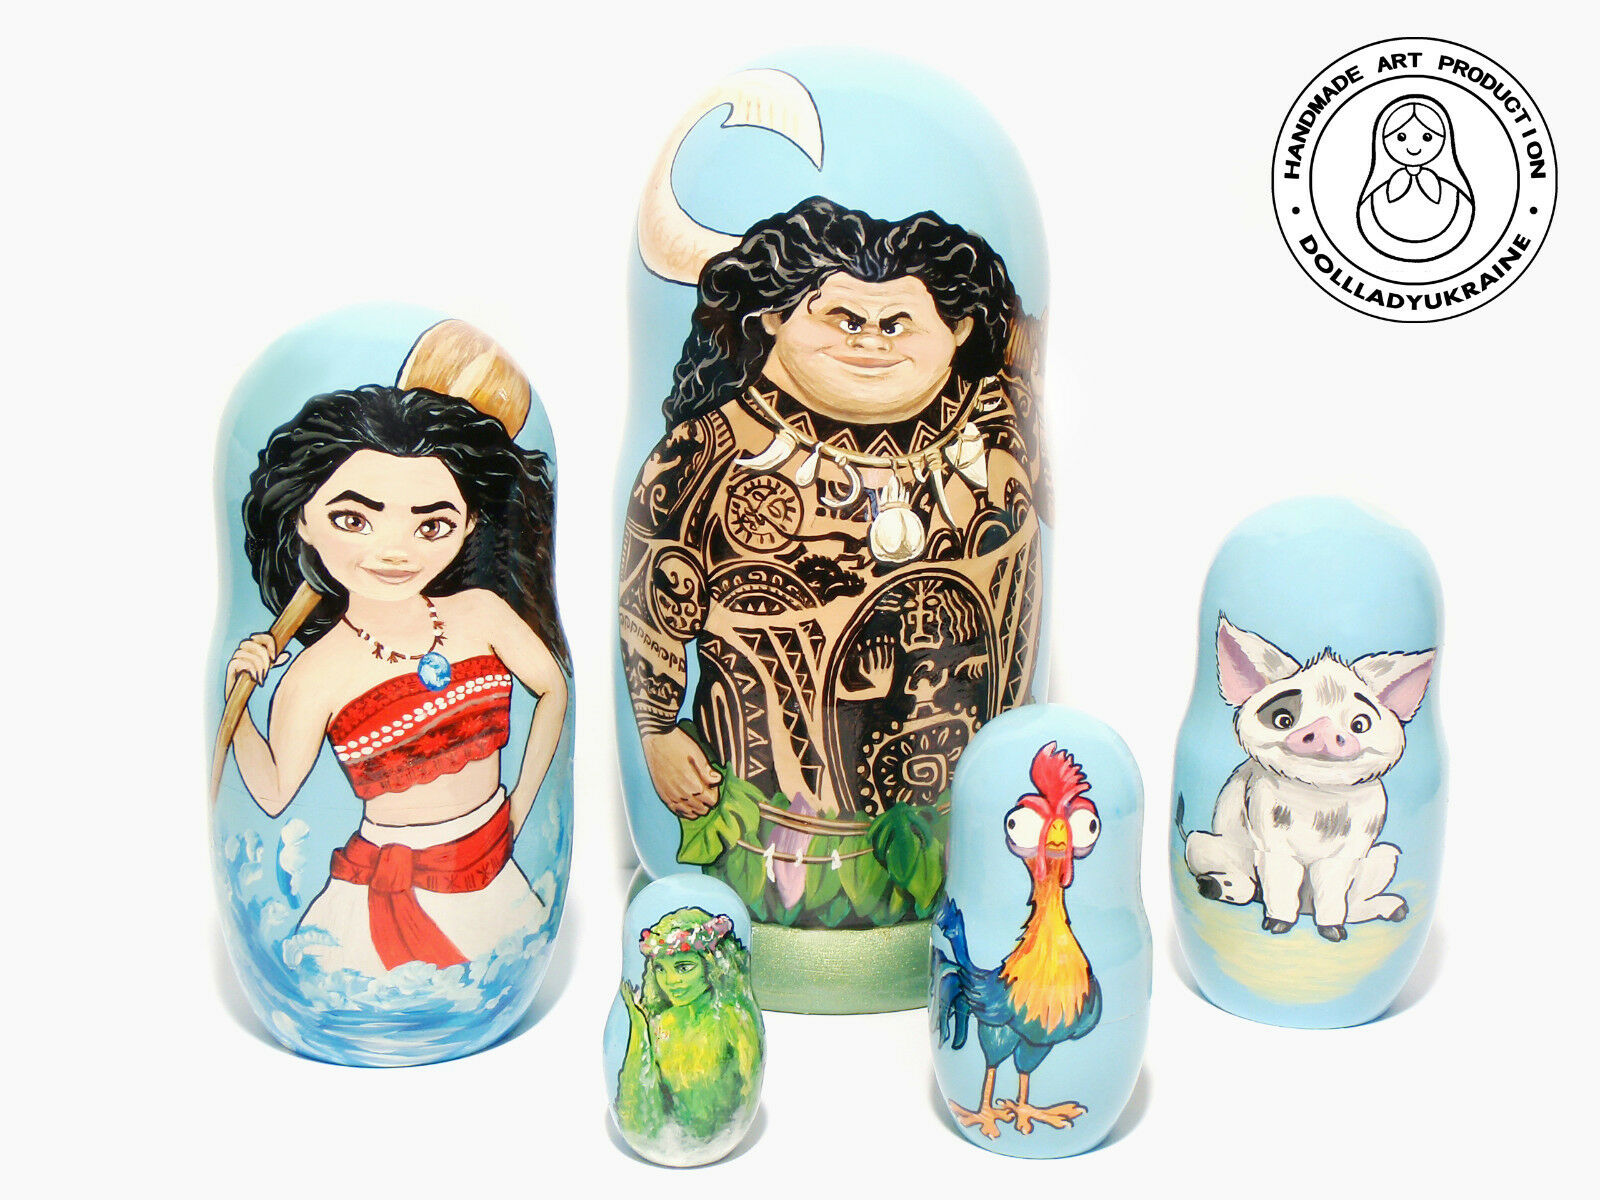 Moana Nesting Doll 5 pieces, Big Dimensione Matryoshka 7,25 in.